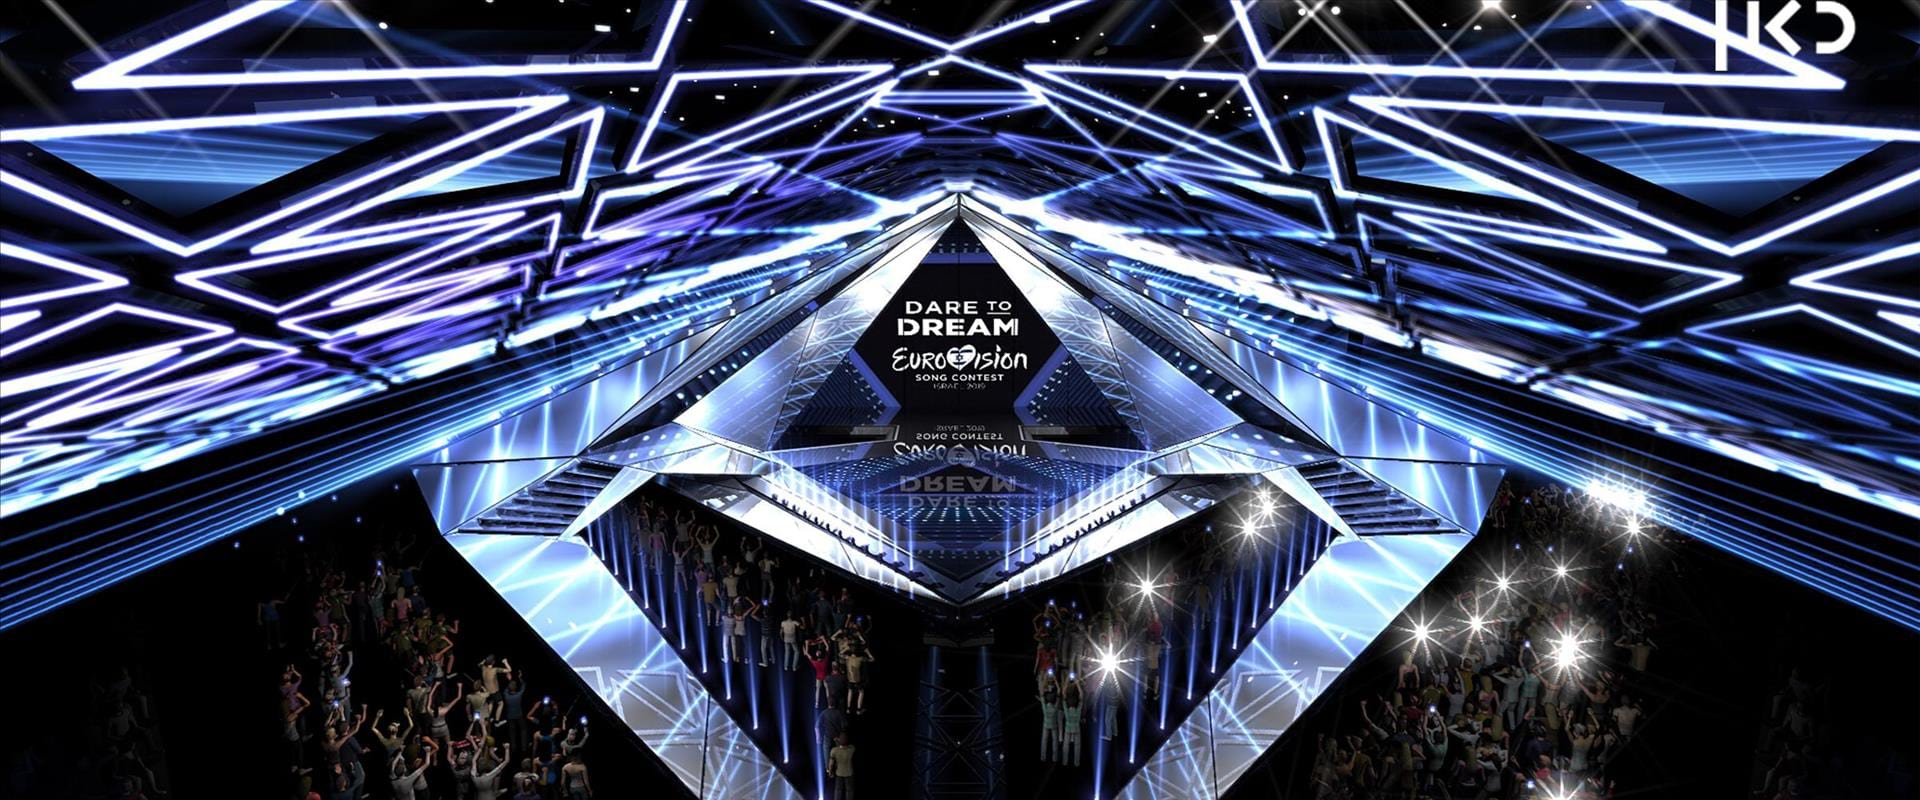 Eurovision 2019: KAN throws more light on stage design details